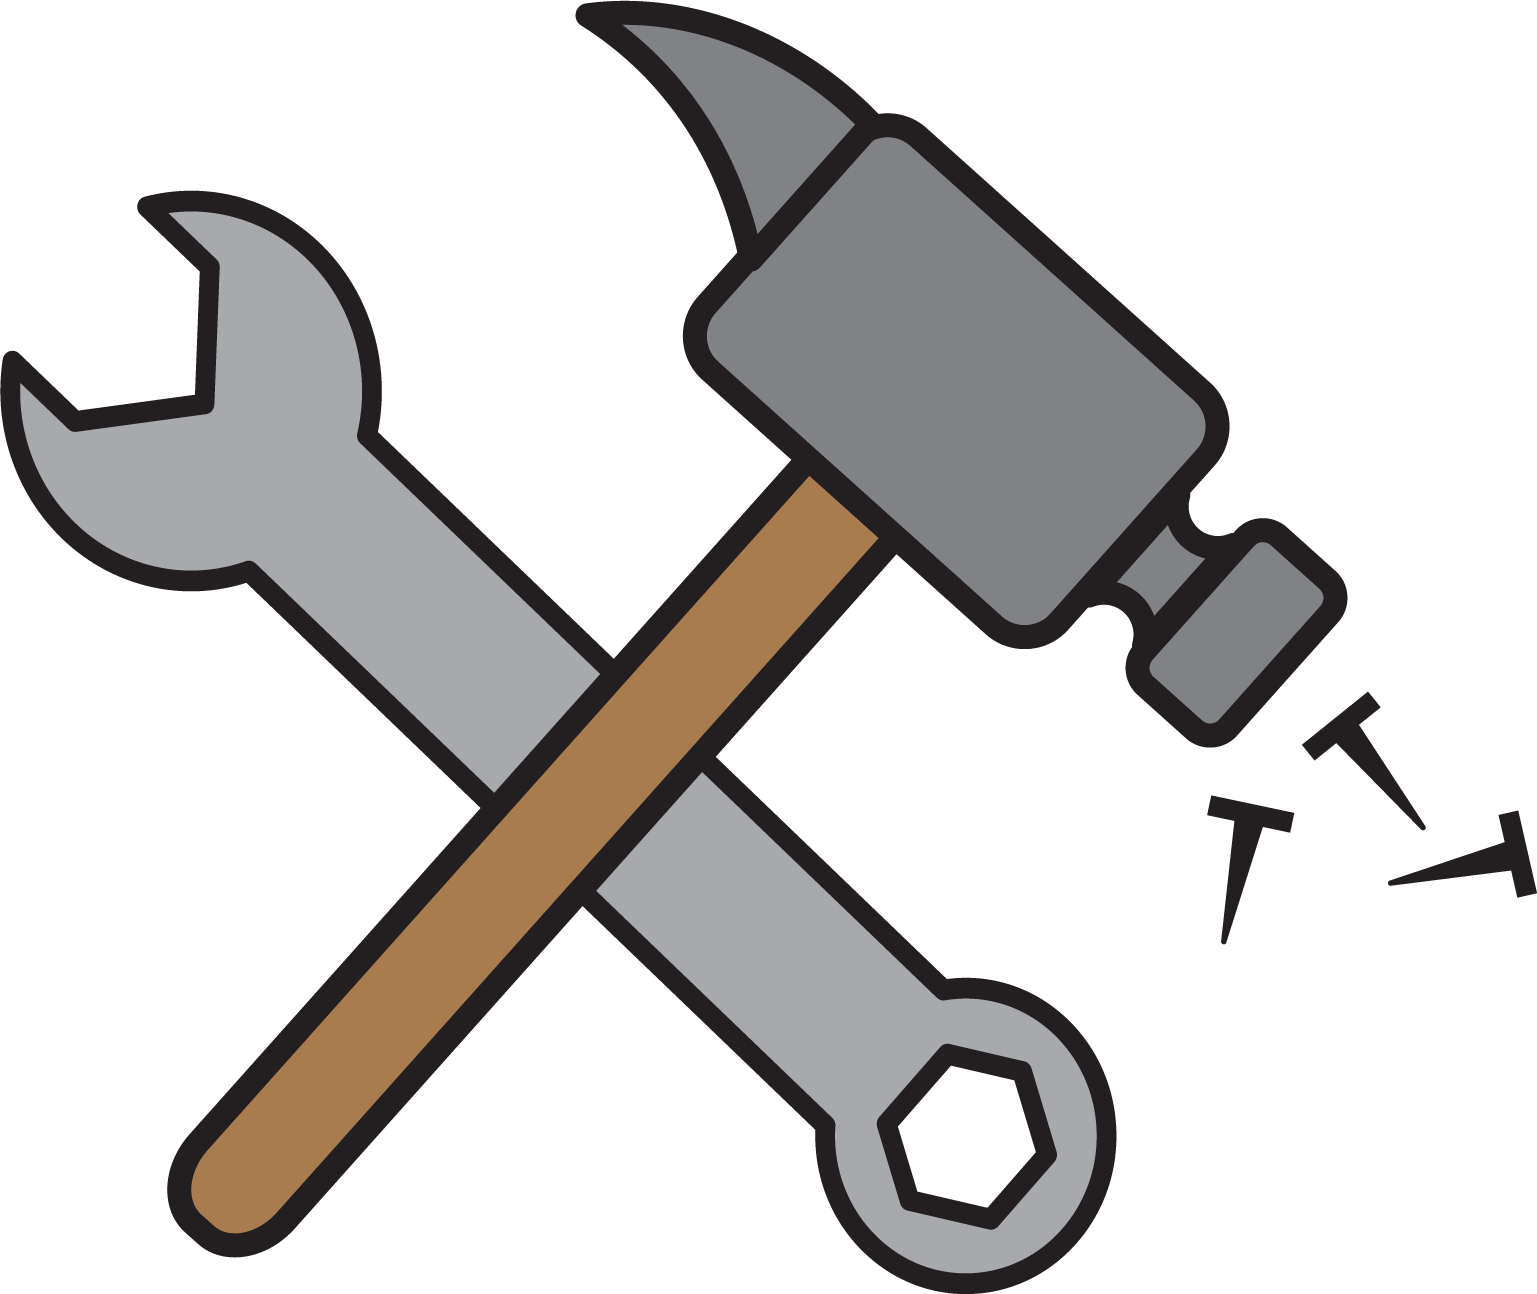 HammerWrench (1).png